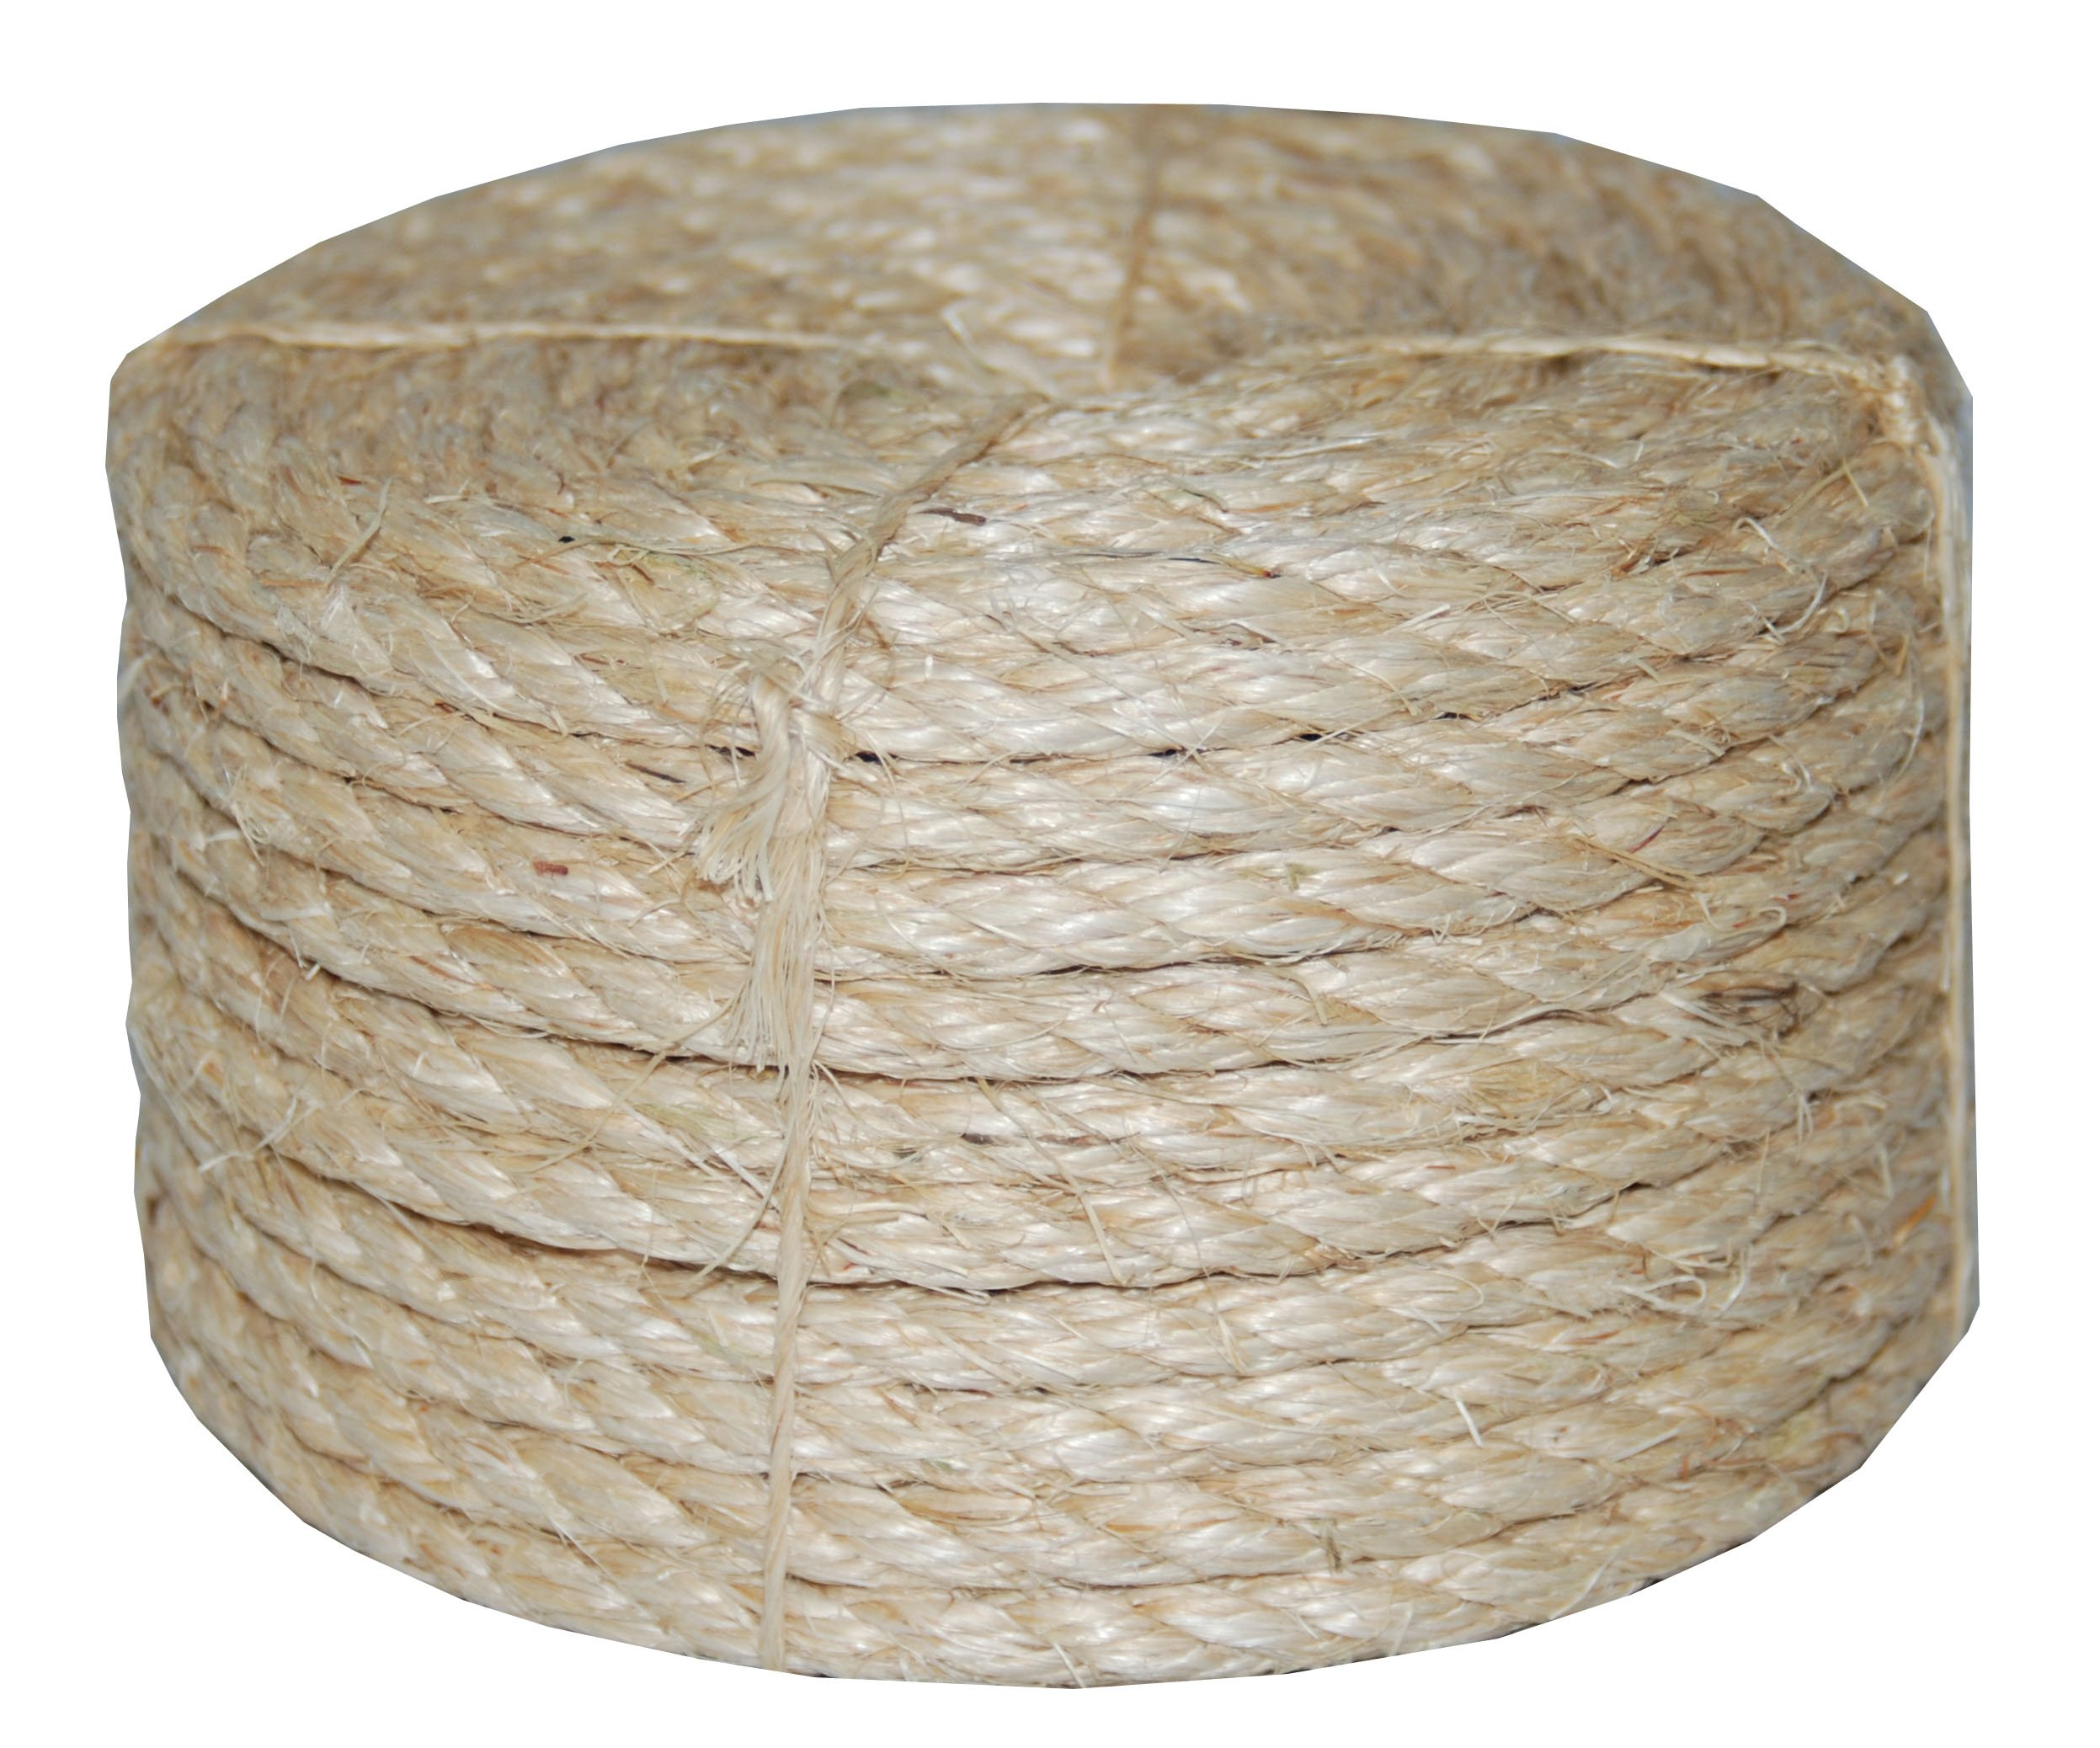 T.W Evans Cordage 23-410 3/8-Inch by 100-Feet Twisted Sisal Rope by T.W . Evans Cordage Co.